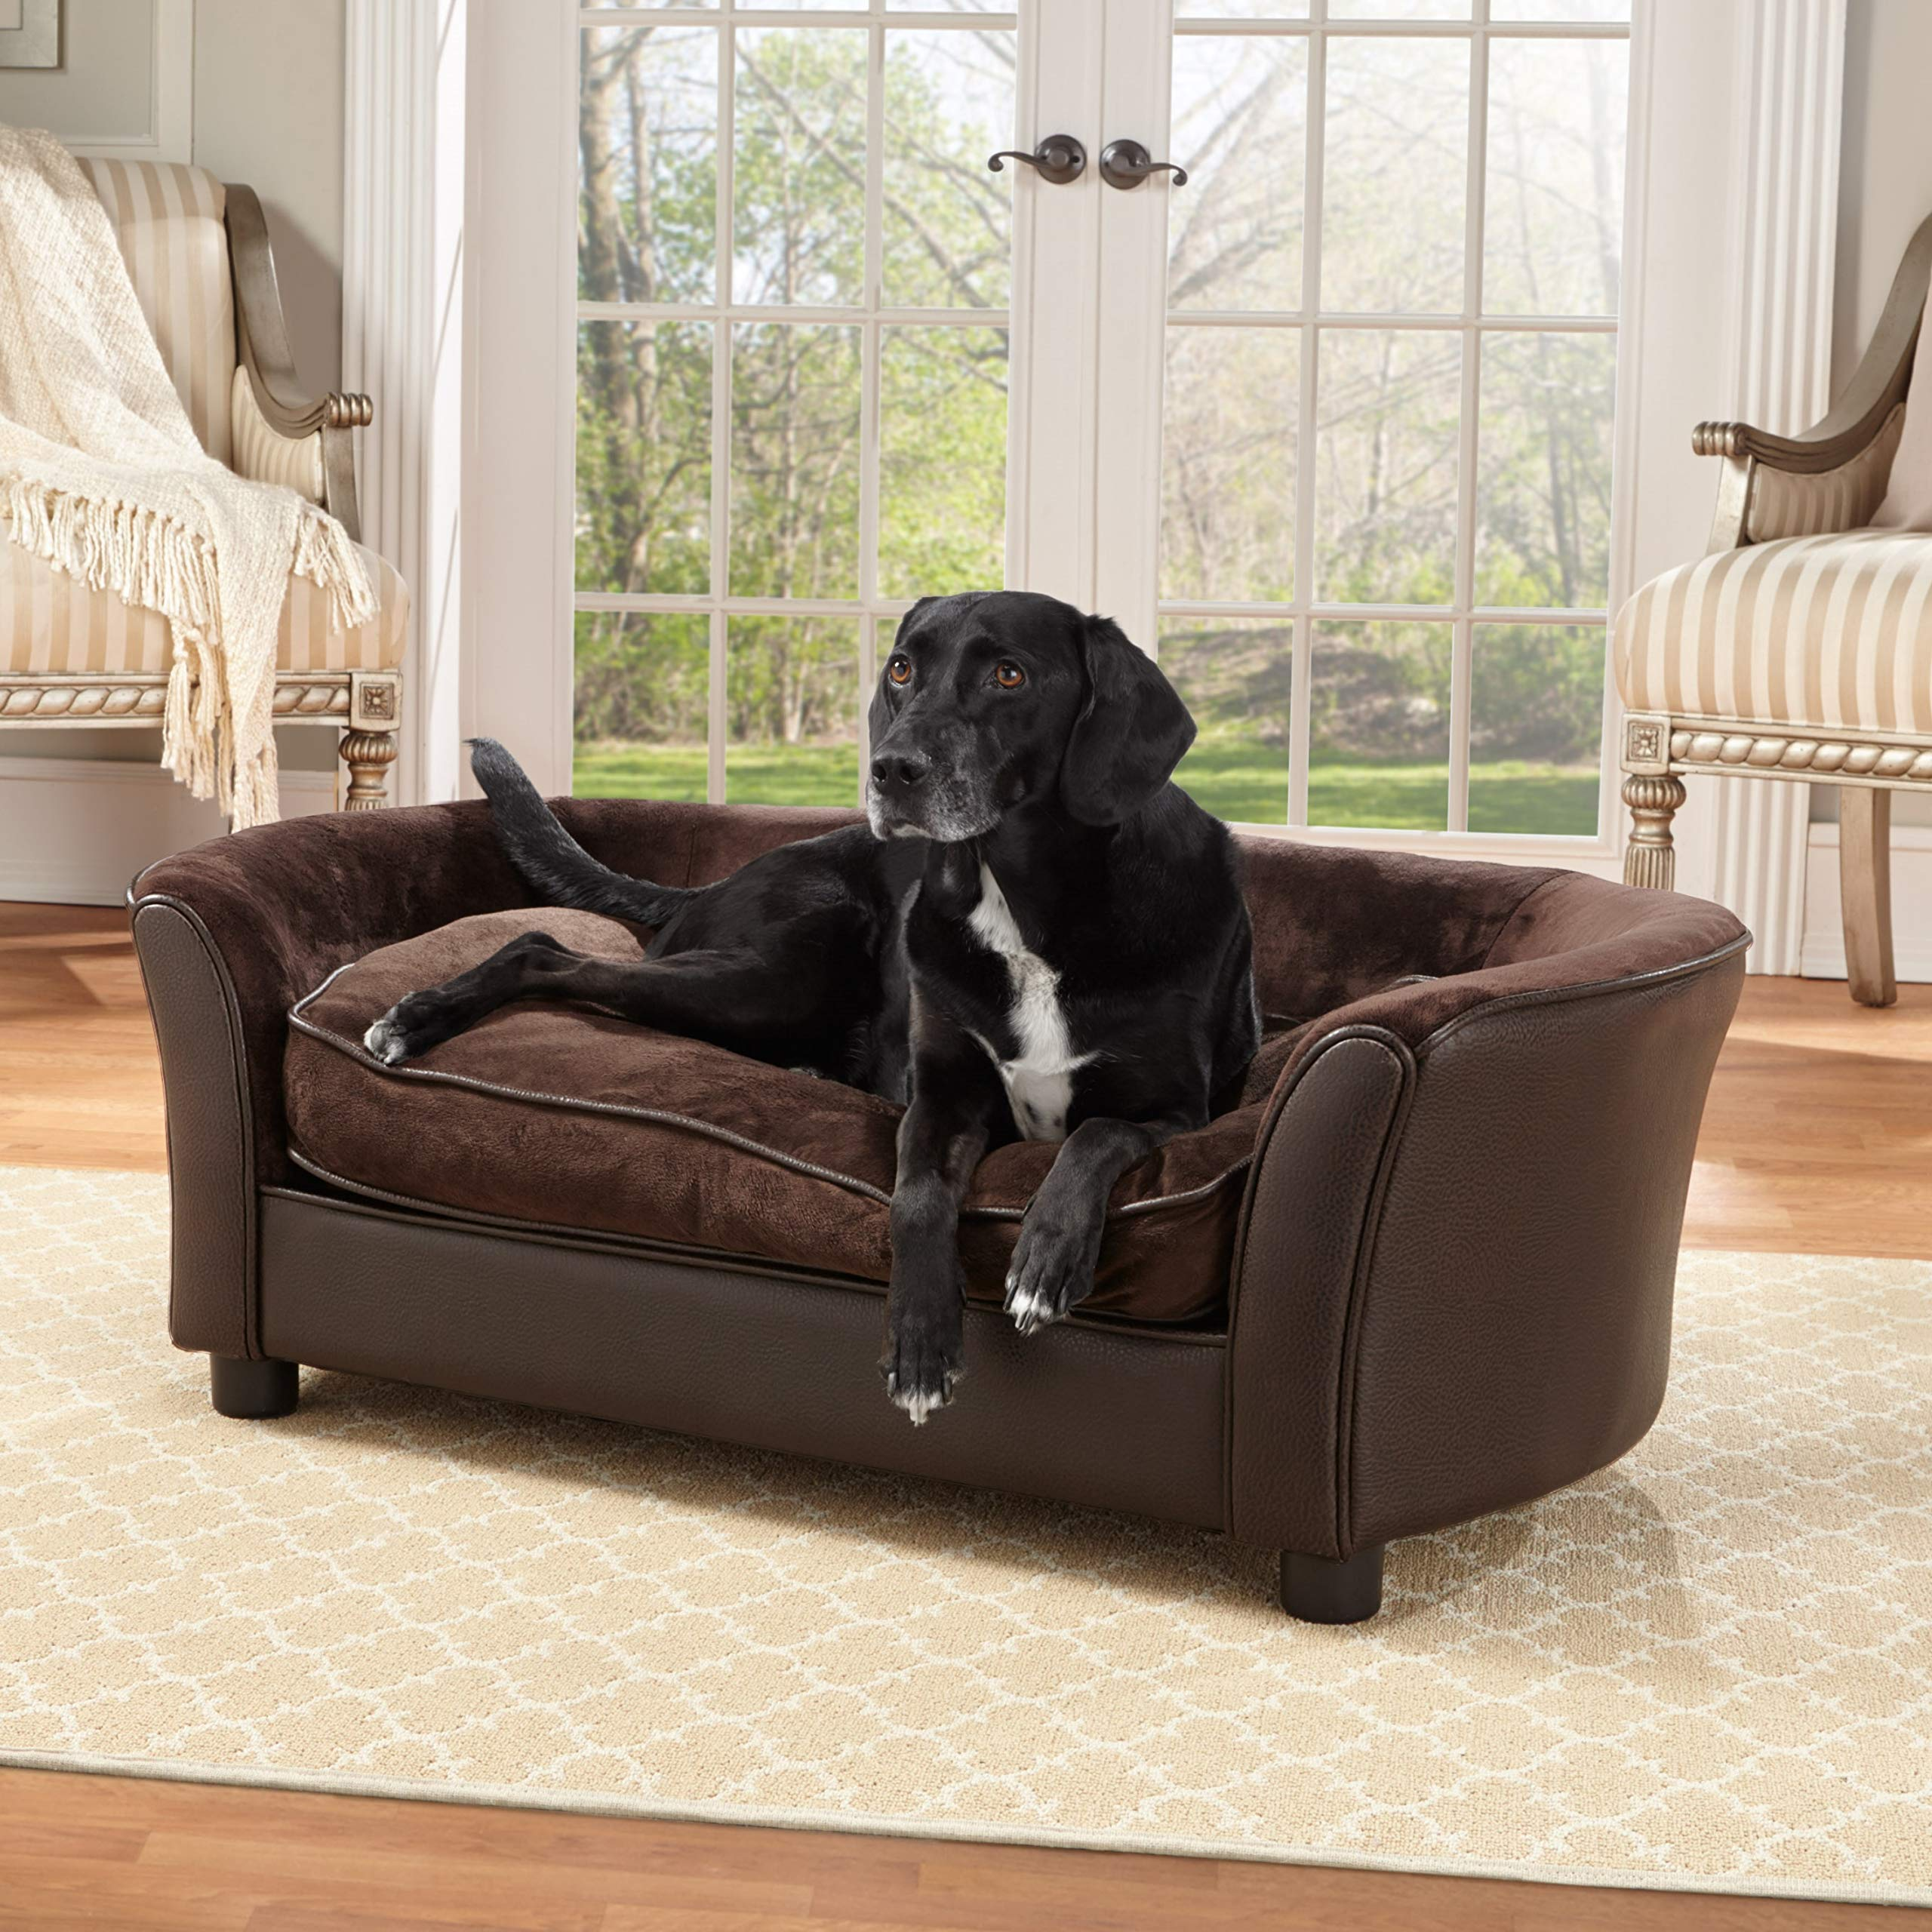 Enchanted Home Pet Ultra Plush Panache Pet Sofa in Pebble Brown, Medium (26-50 lbs) by Enchanted Home Pet